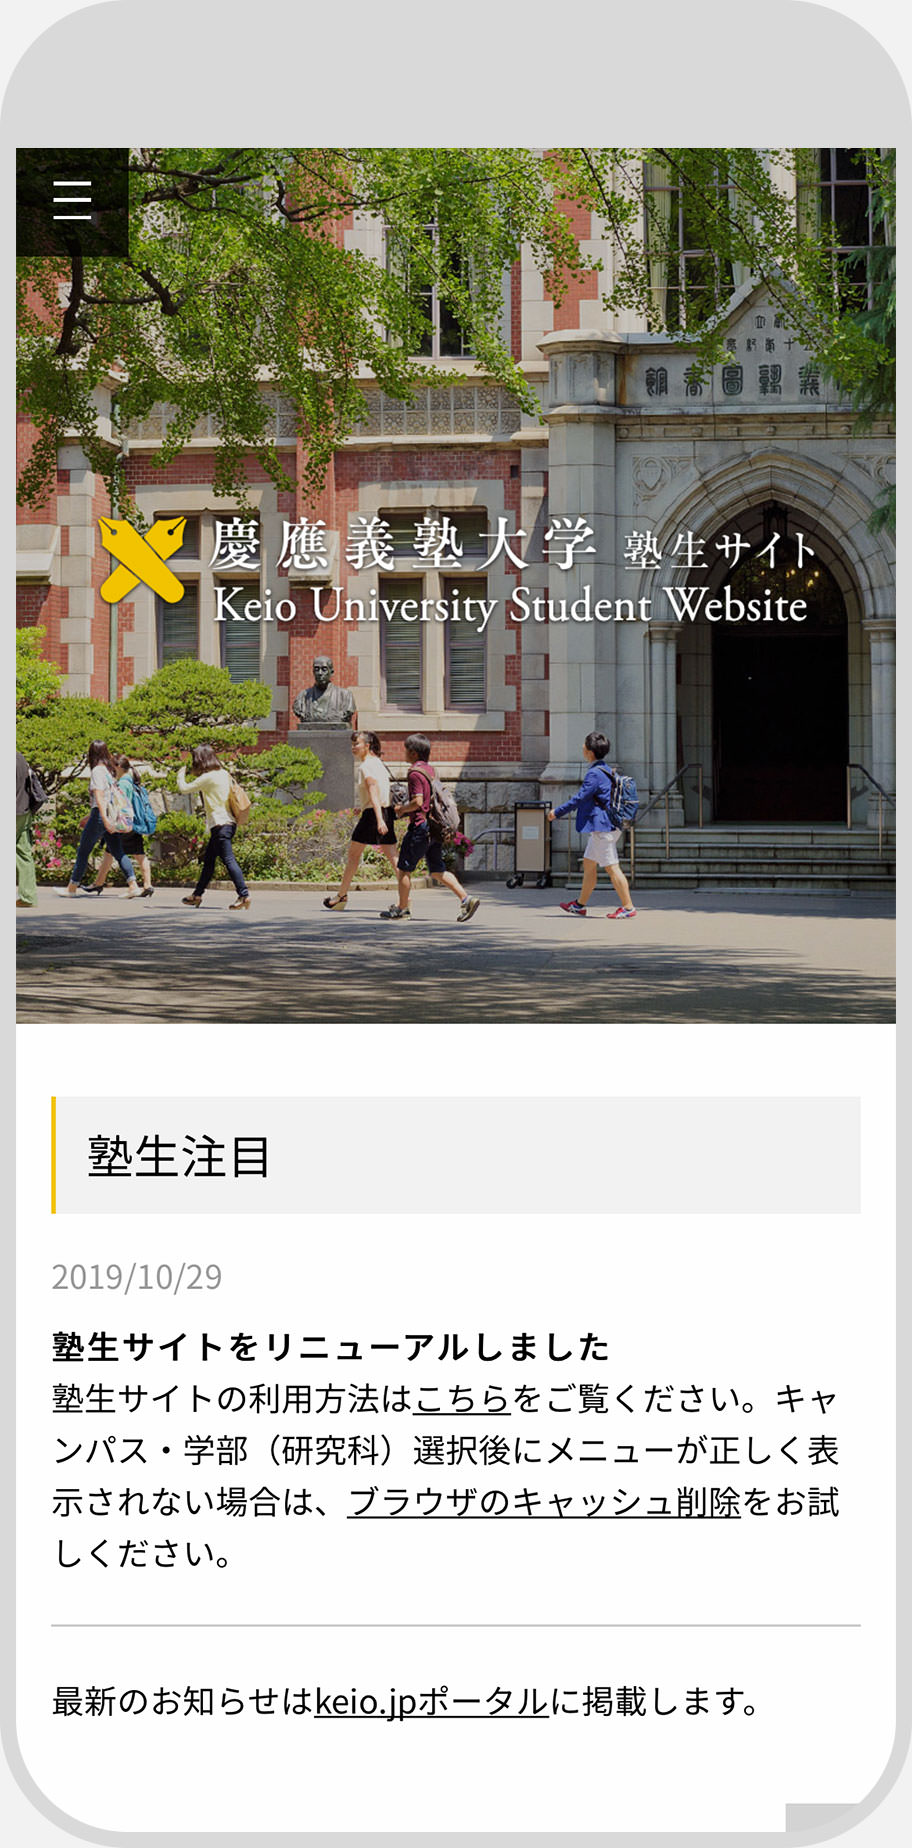 Keio University Student Website